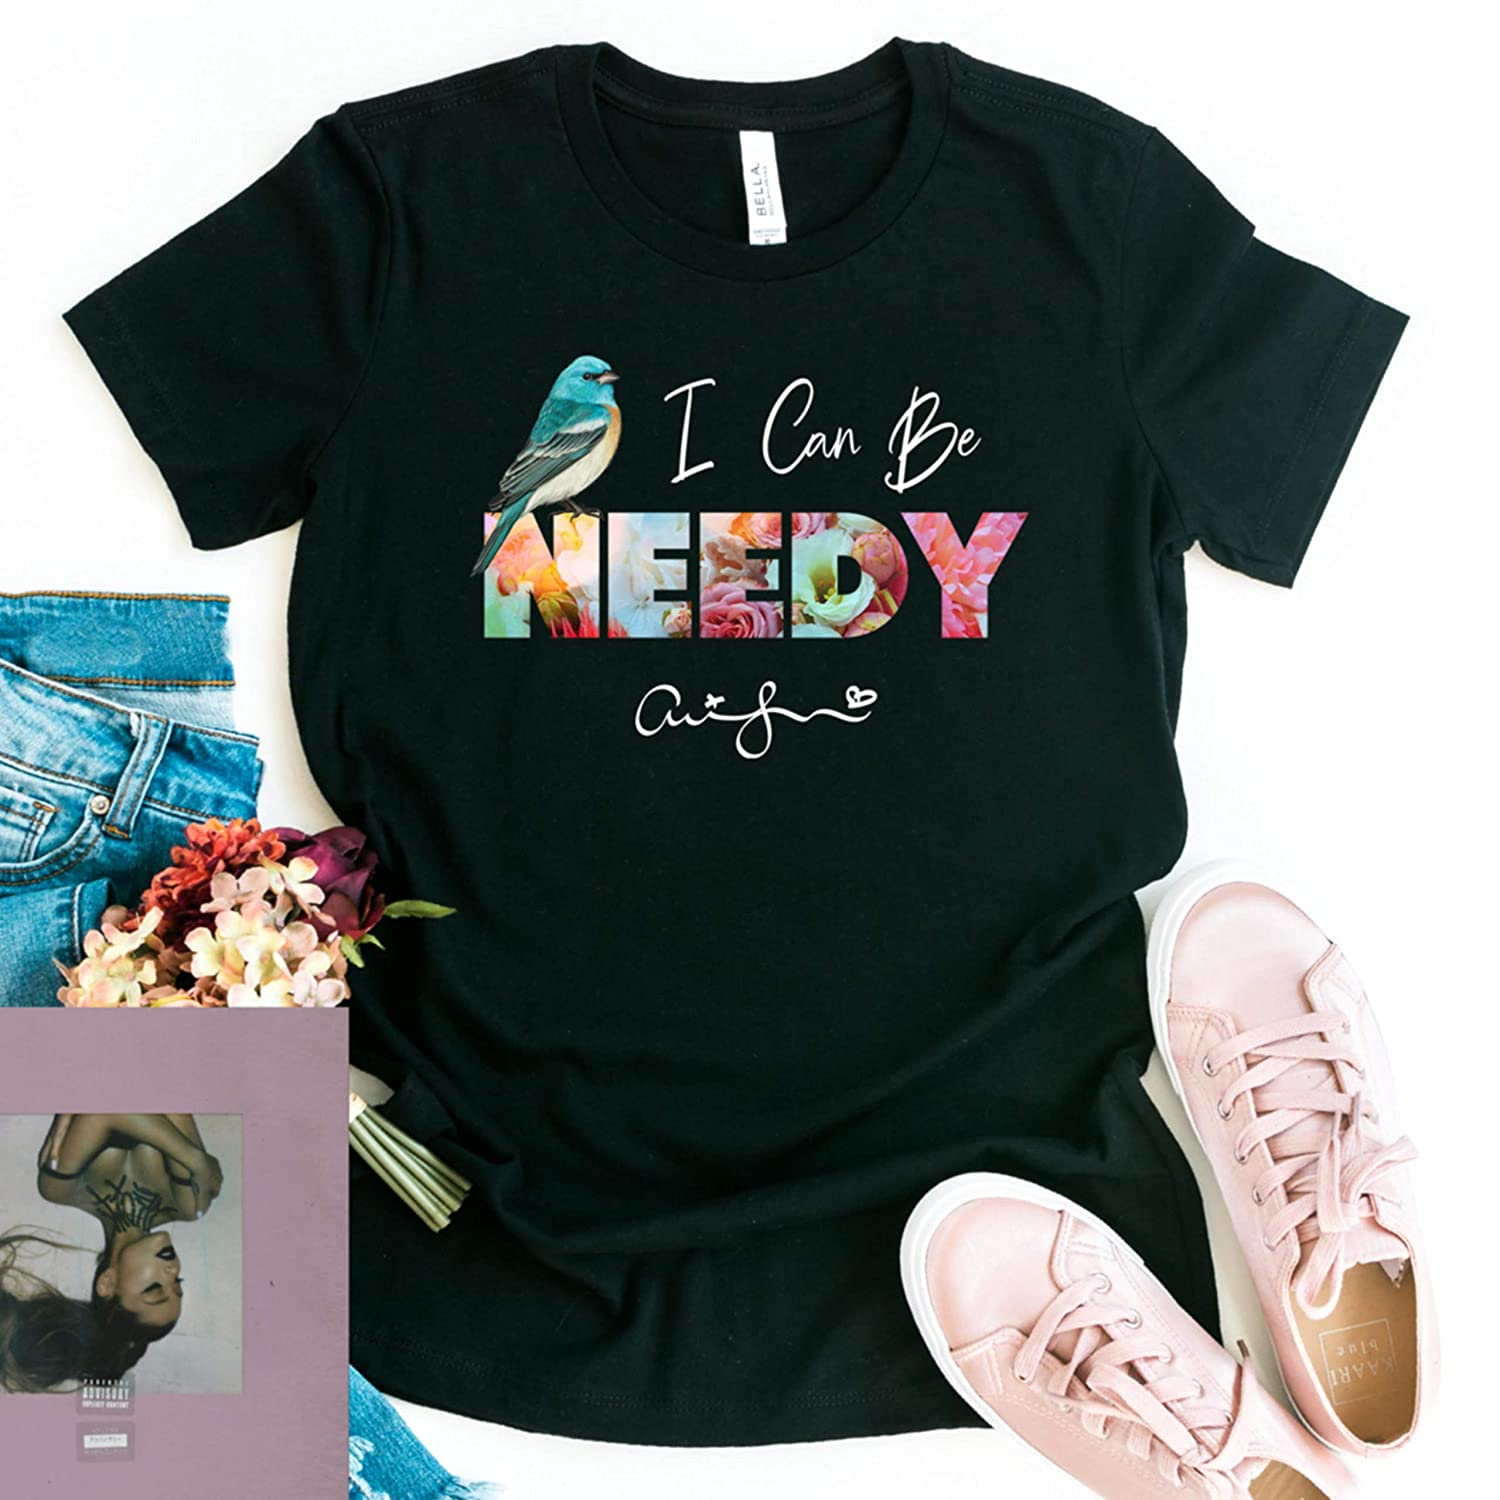 Amazon Com I Can Be Needy Tee Ariana Grande T Shirt Nasa 7